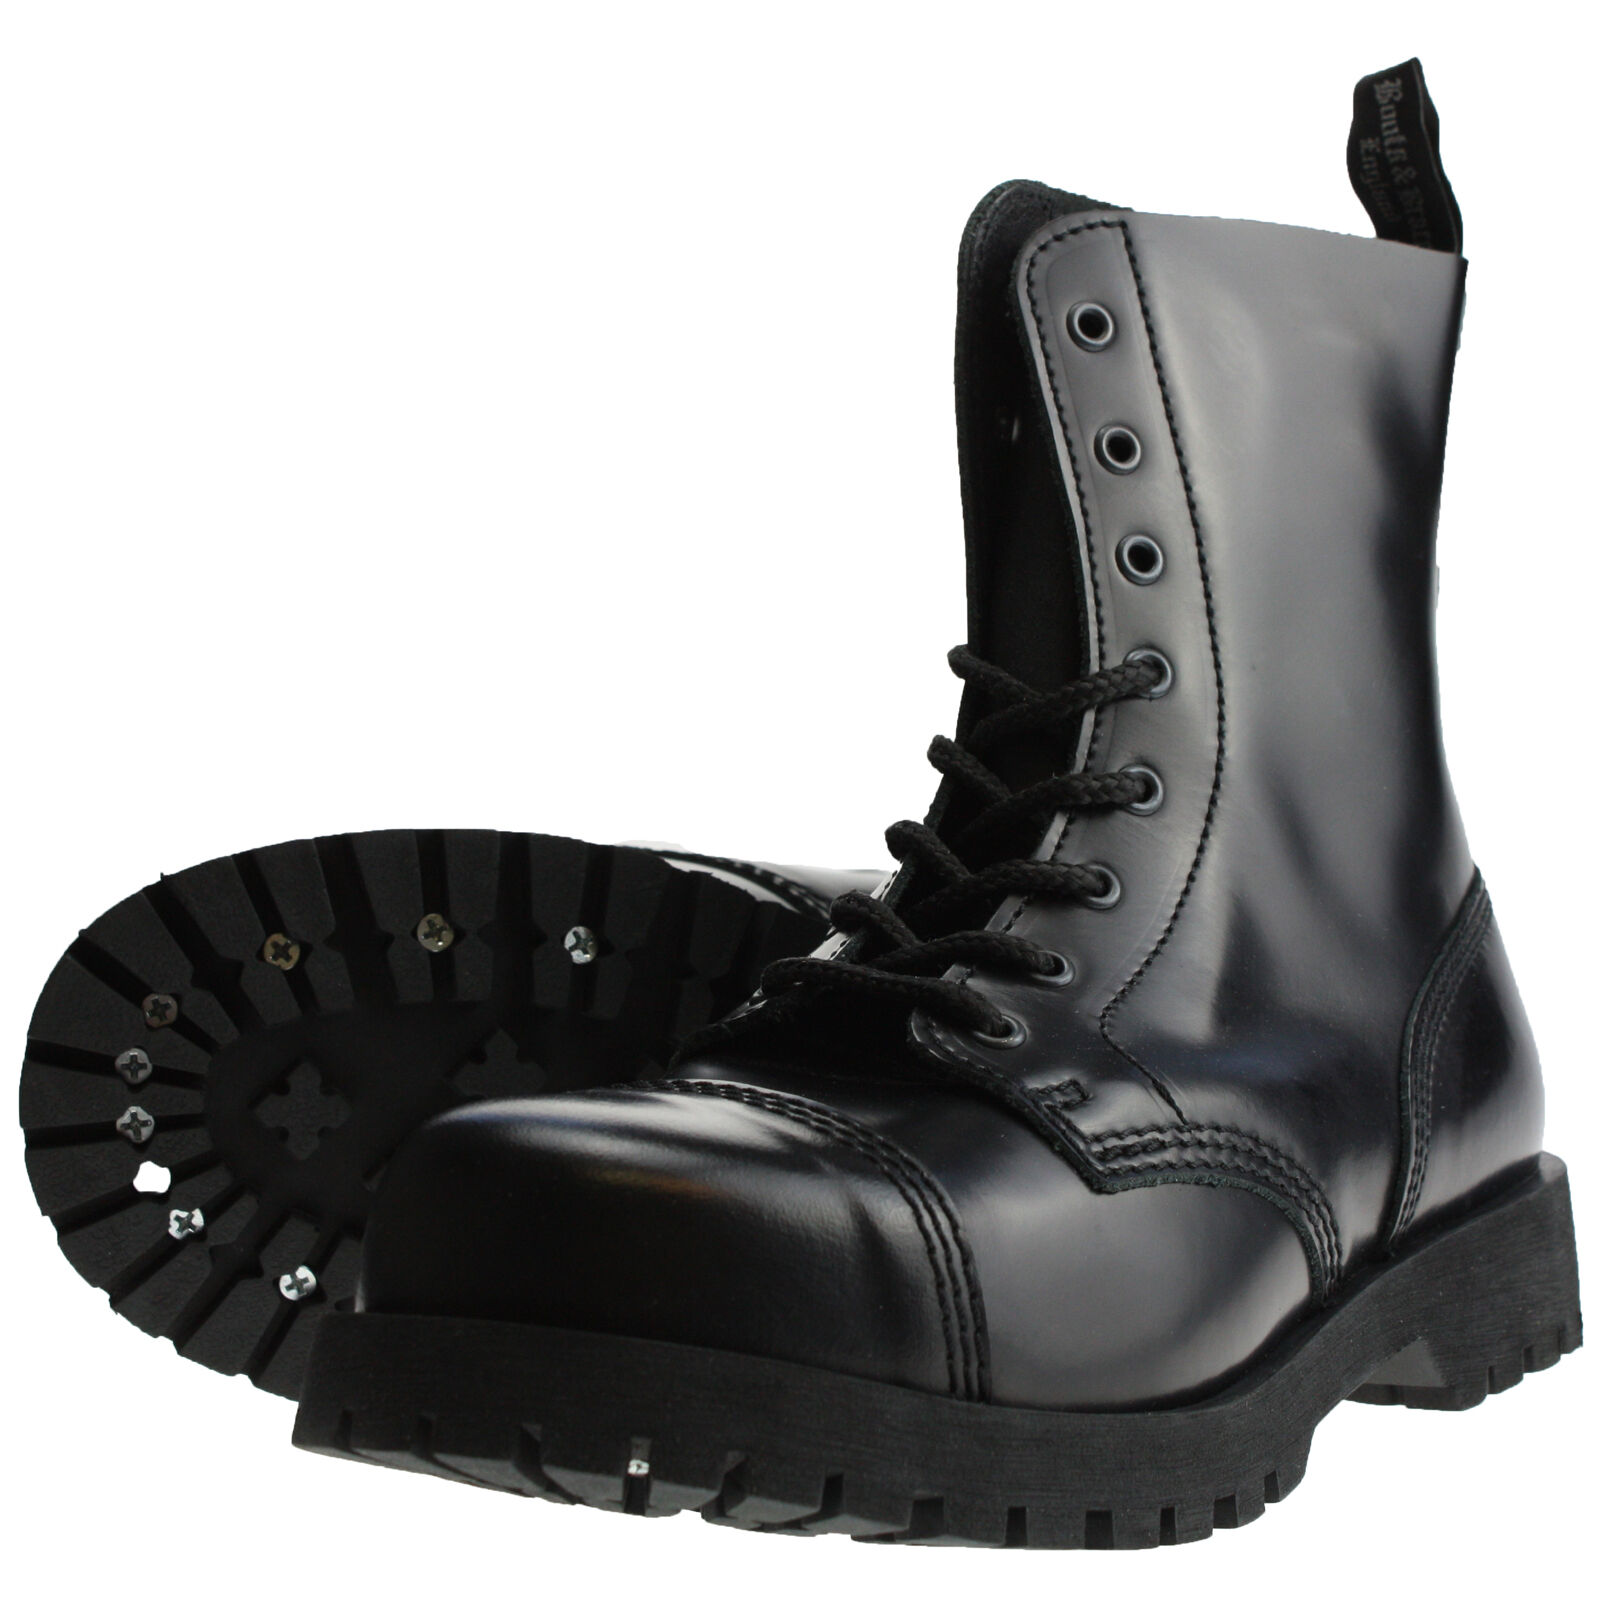 Boots and Braces 8-hole Rangers Black Leather Combat Steel toe cap NEW